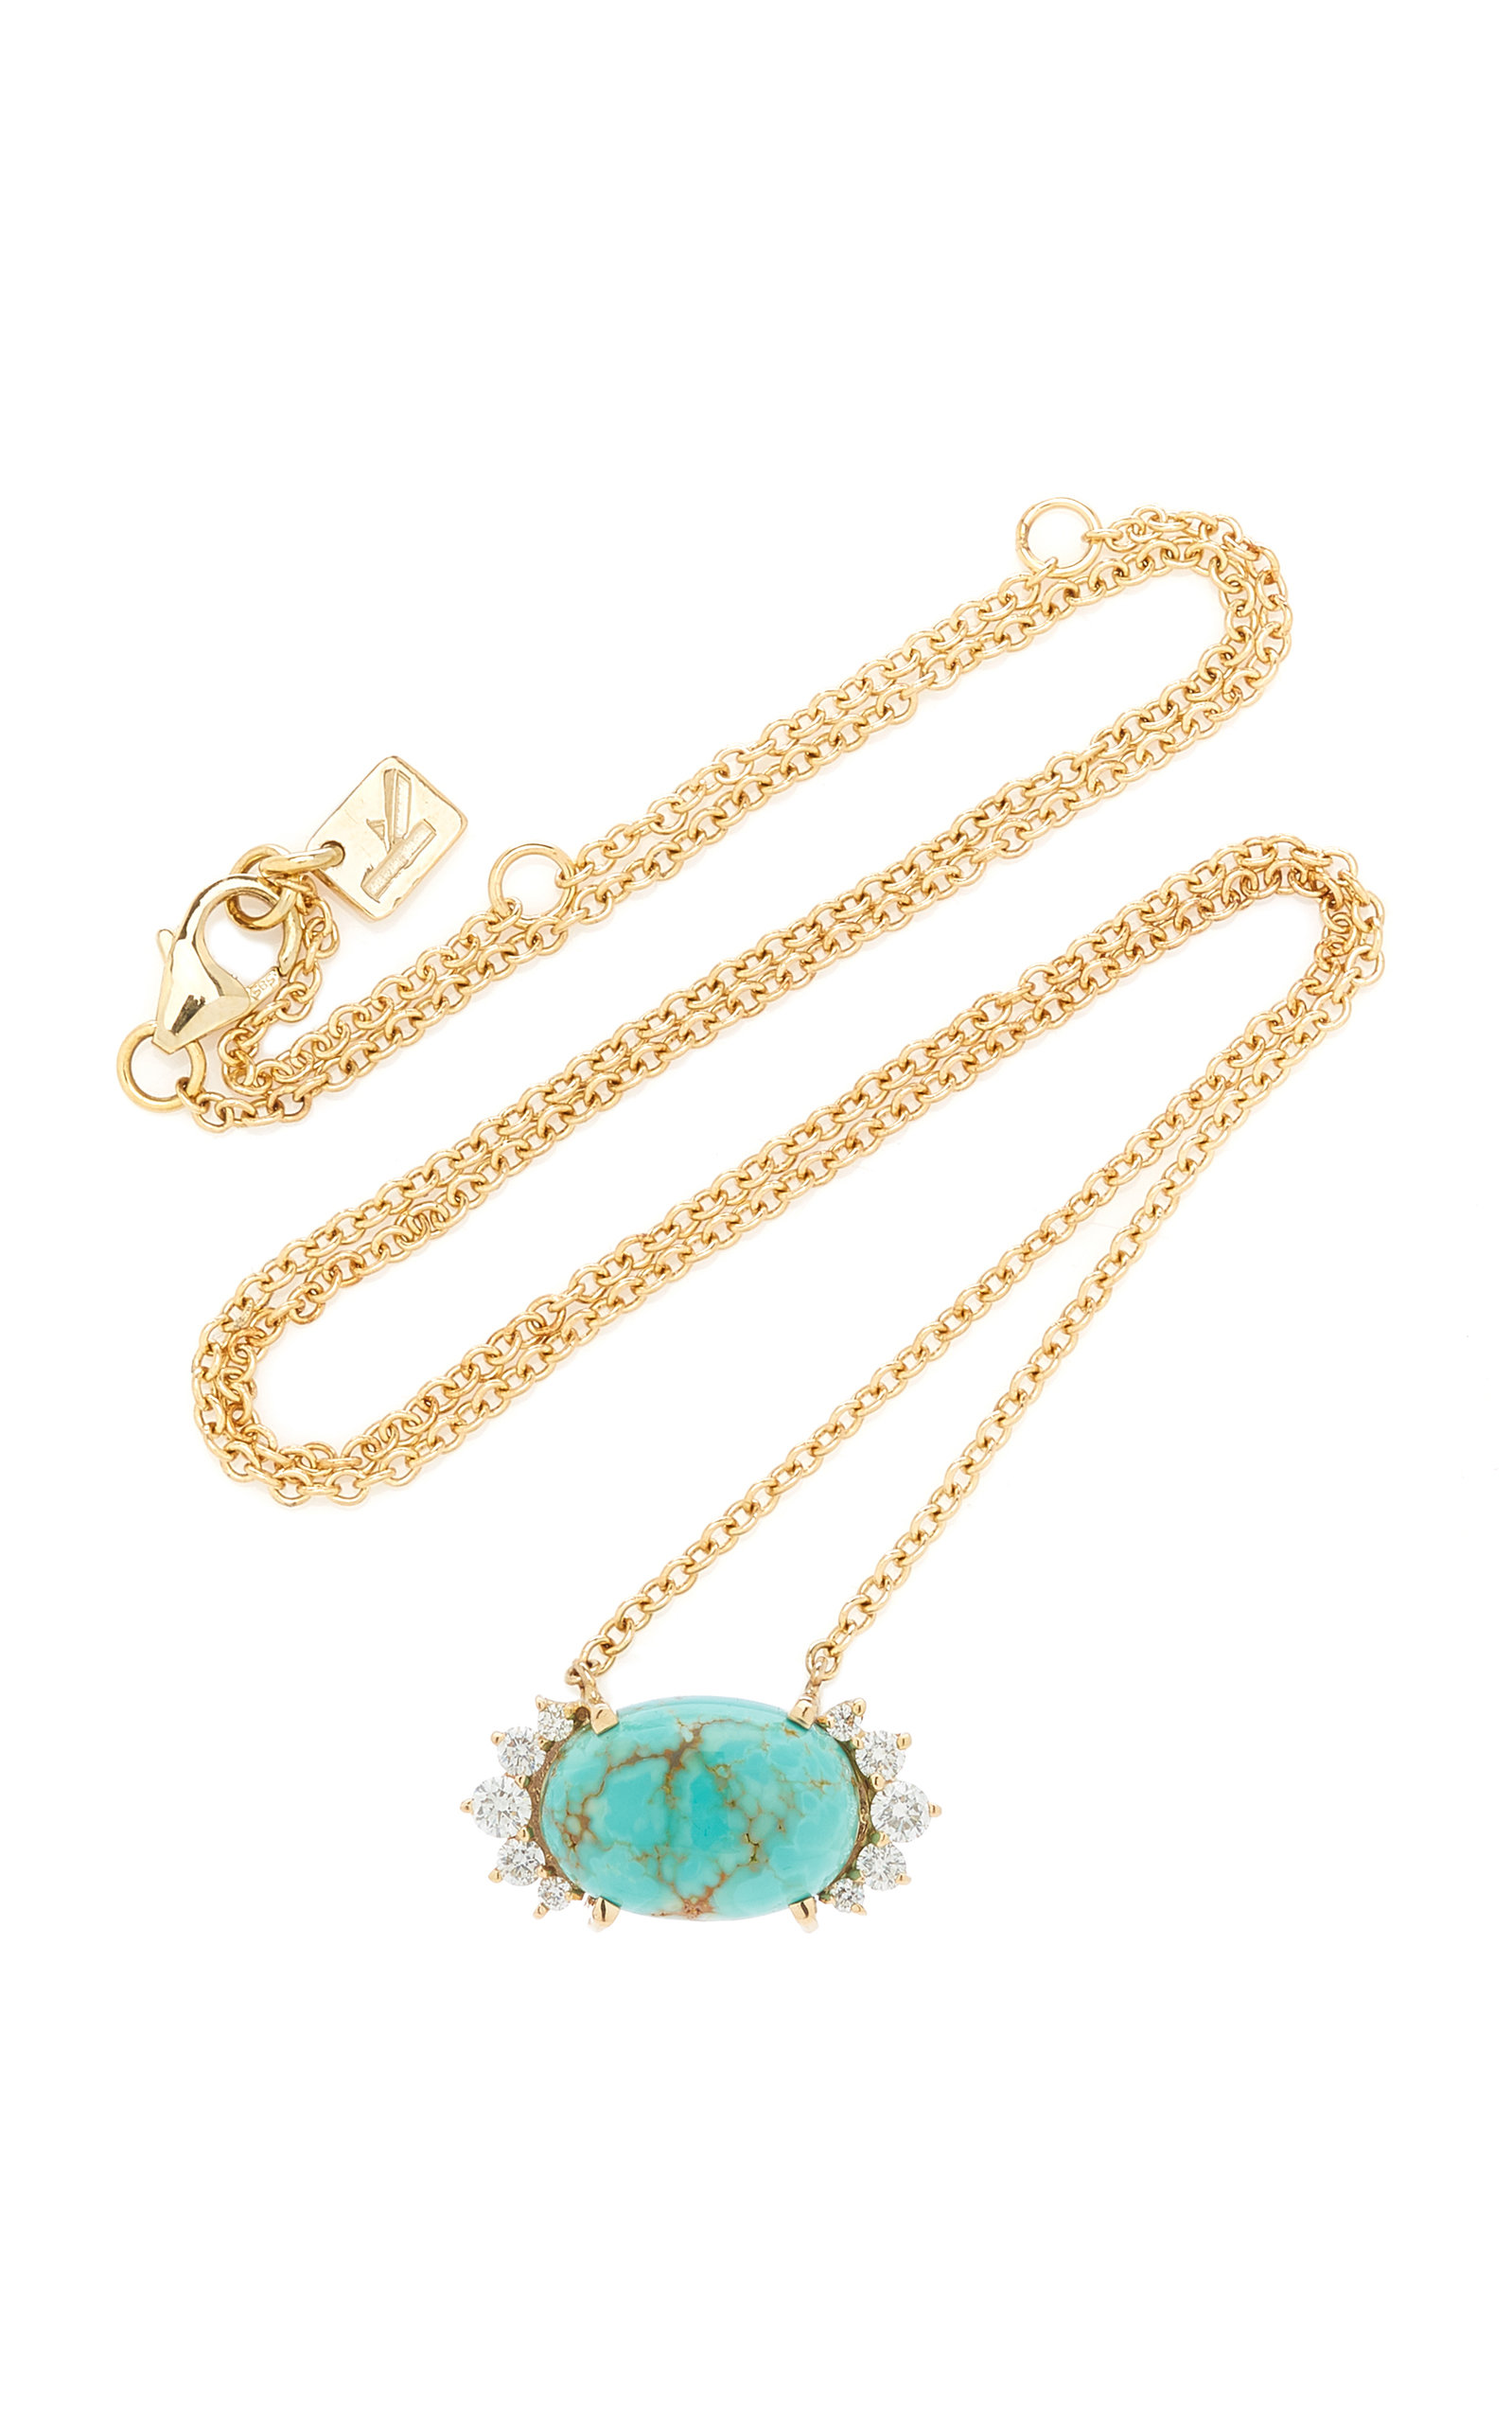 Women's 14K Yellow Gold Turquoise and Diamond Necklace